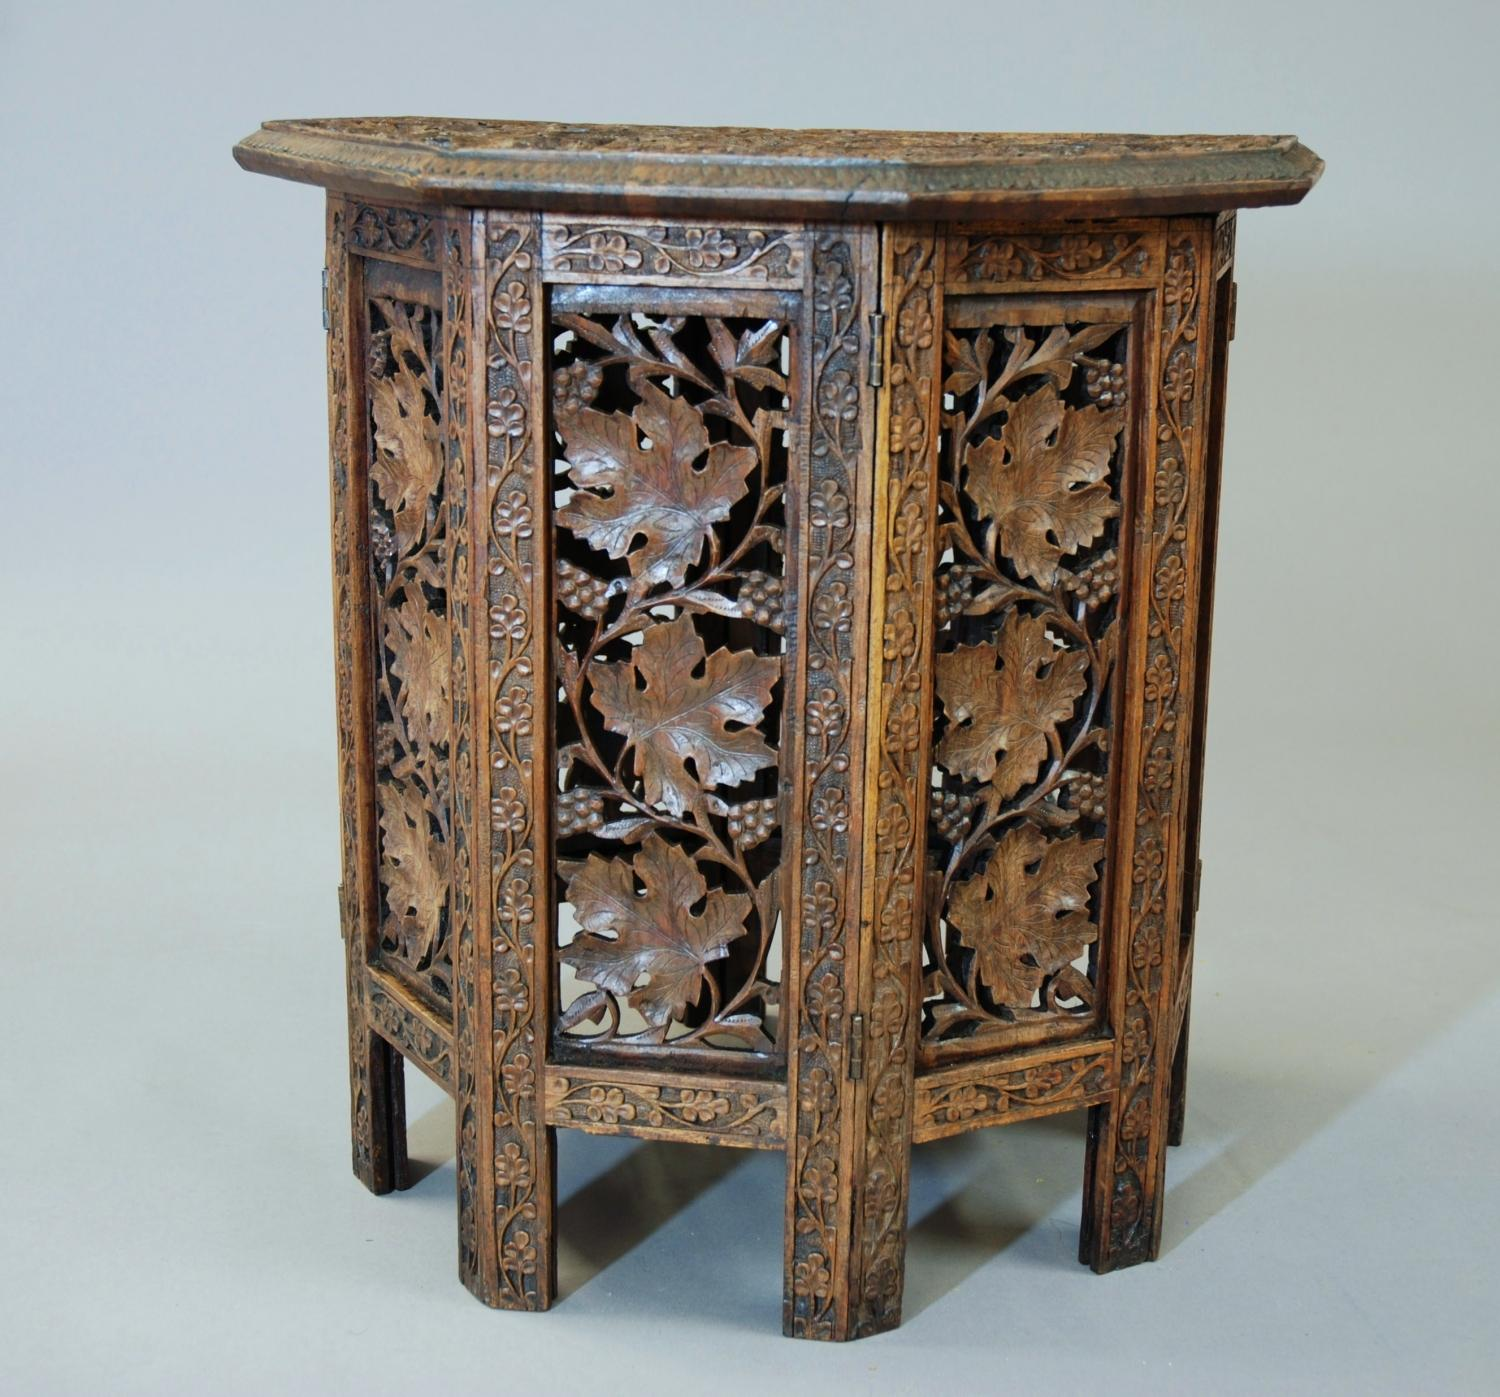 Early 20th century Eastern table